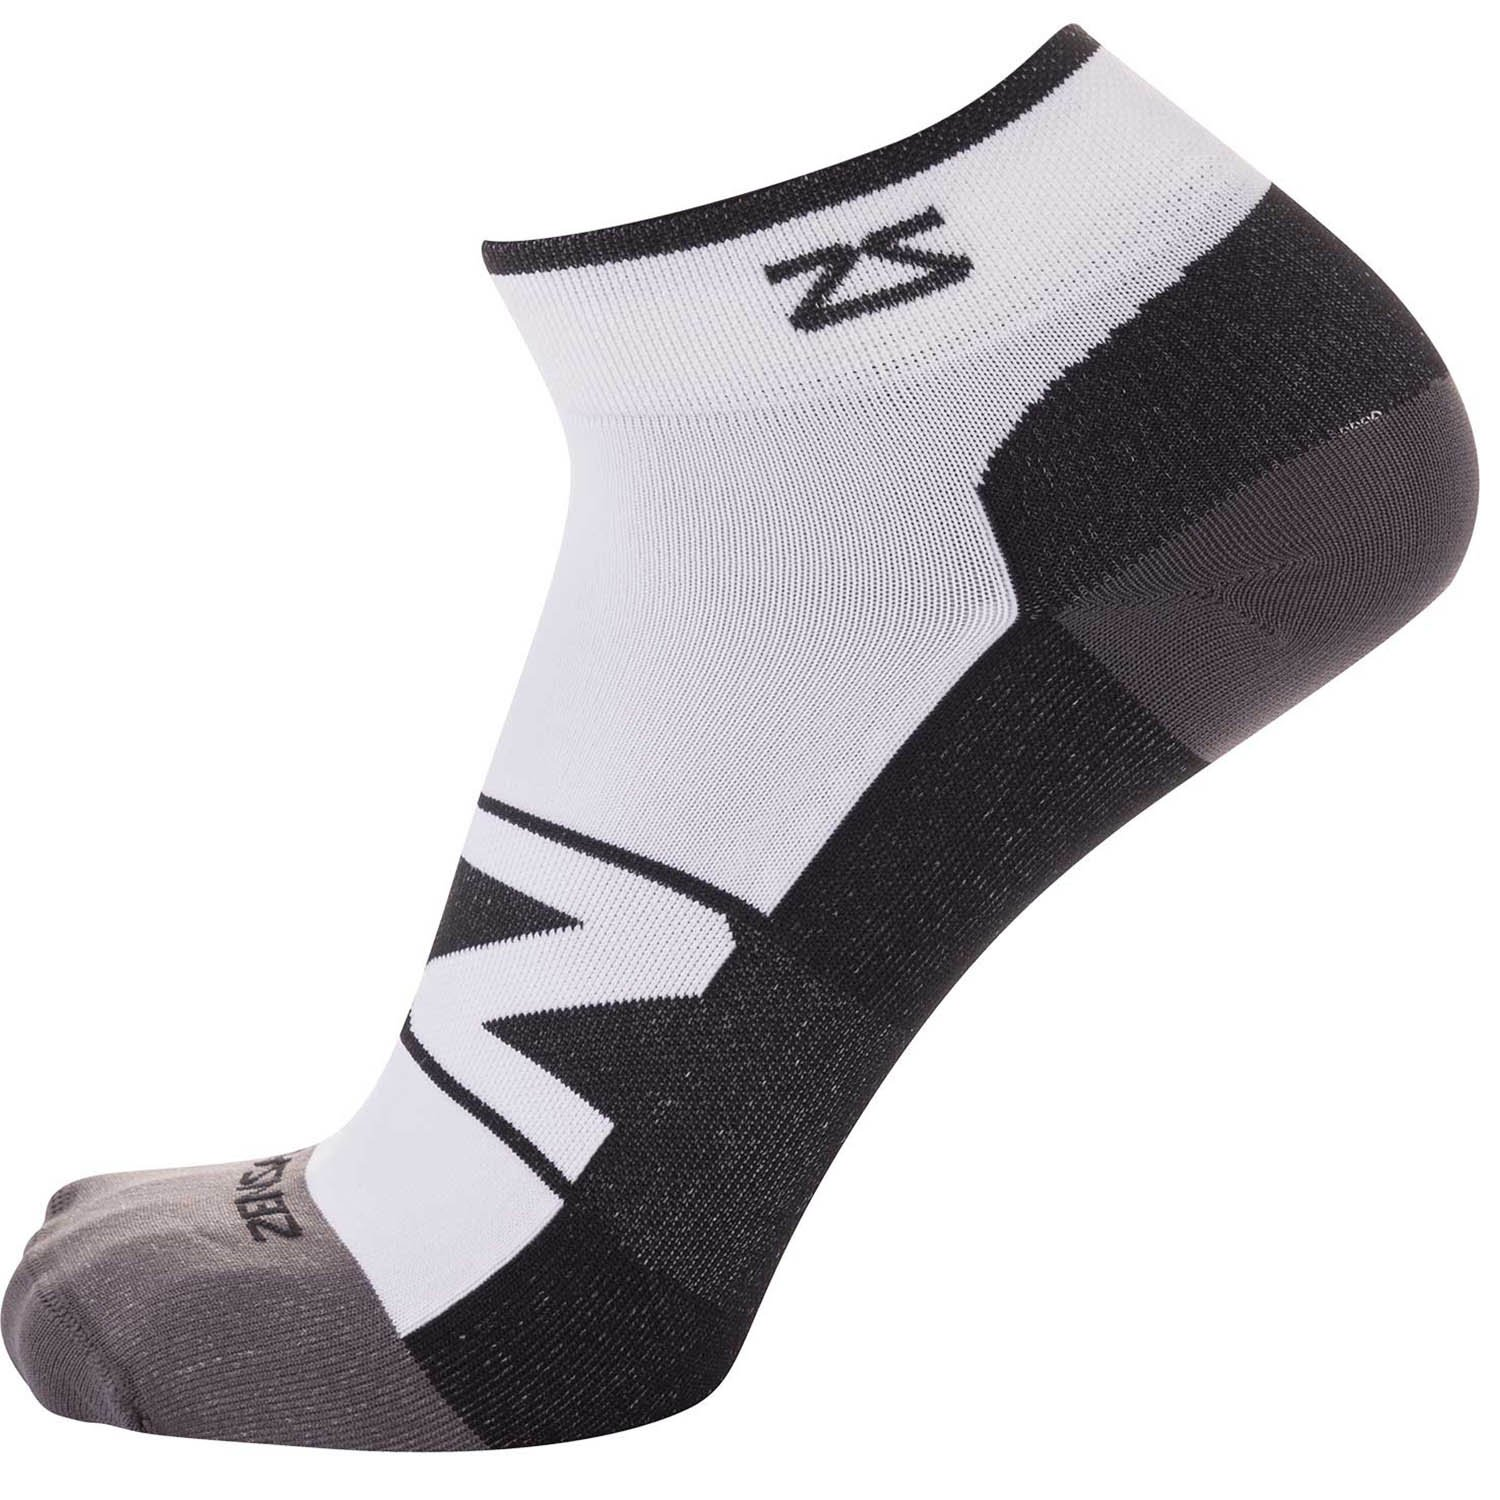 2F7G Zensah Wool Running Sock Discounted Rate Products Hot Sale